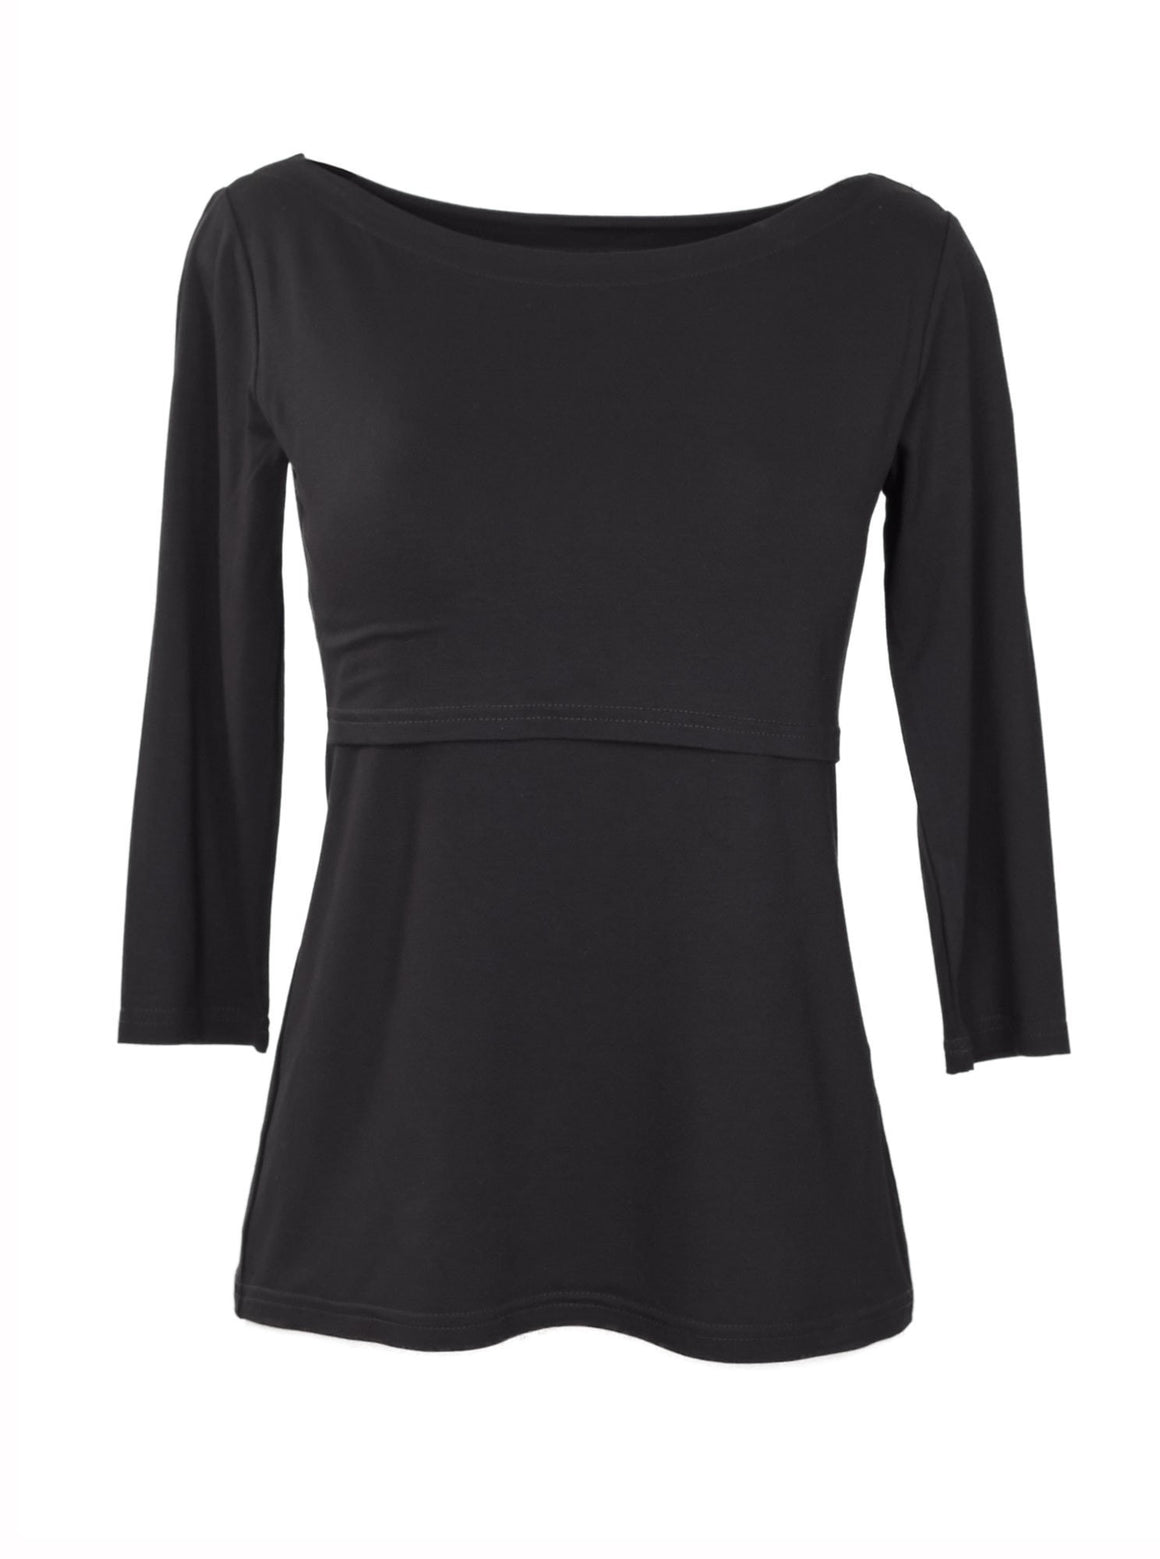 Basic Black Long Sleeve Nursing Top